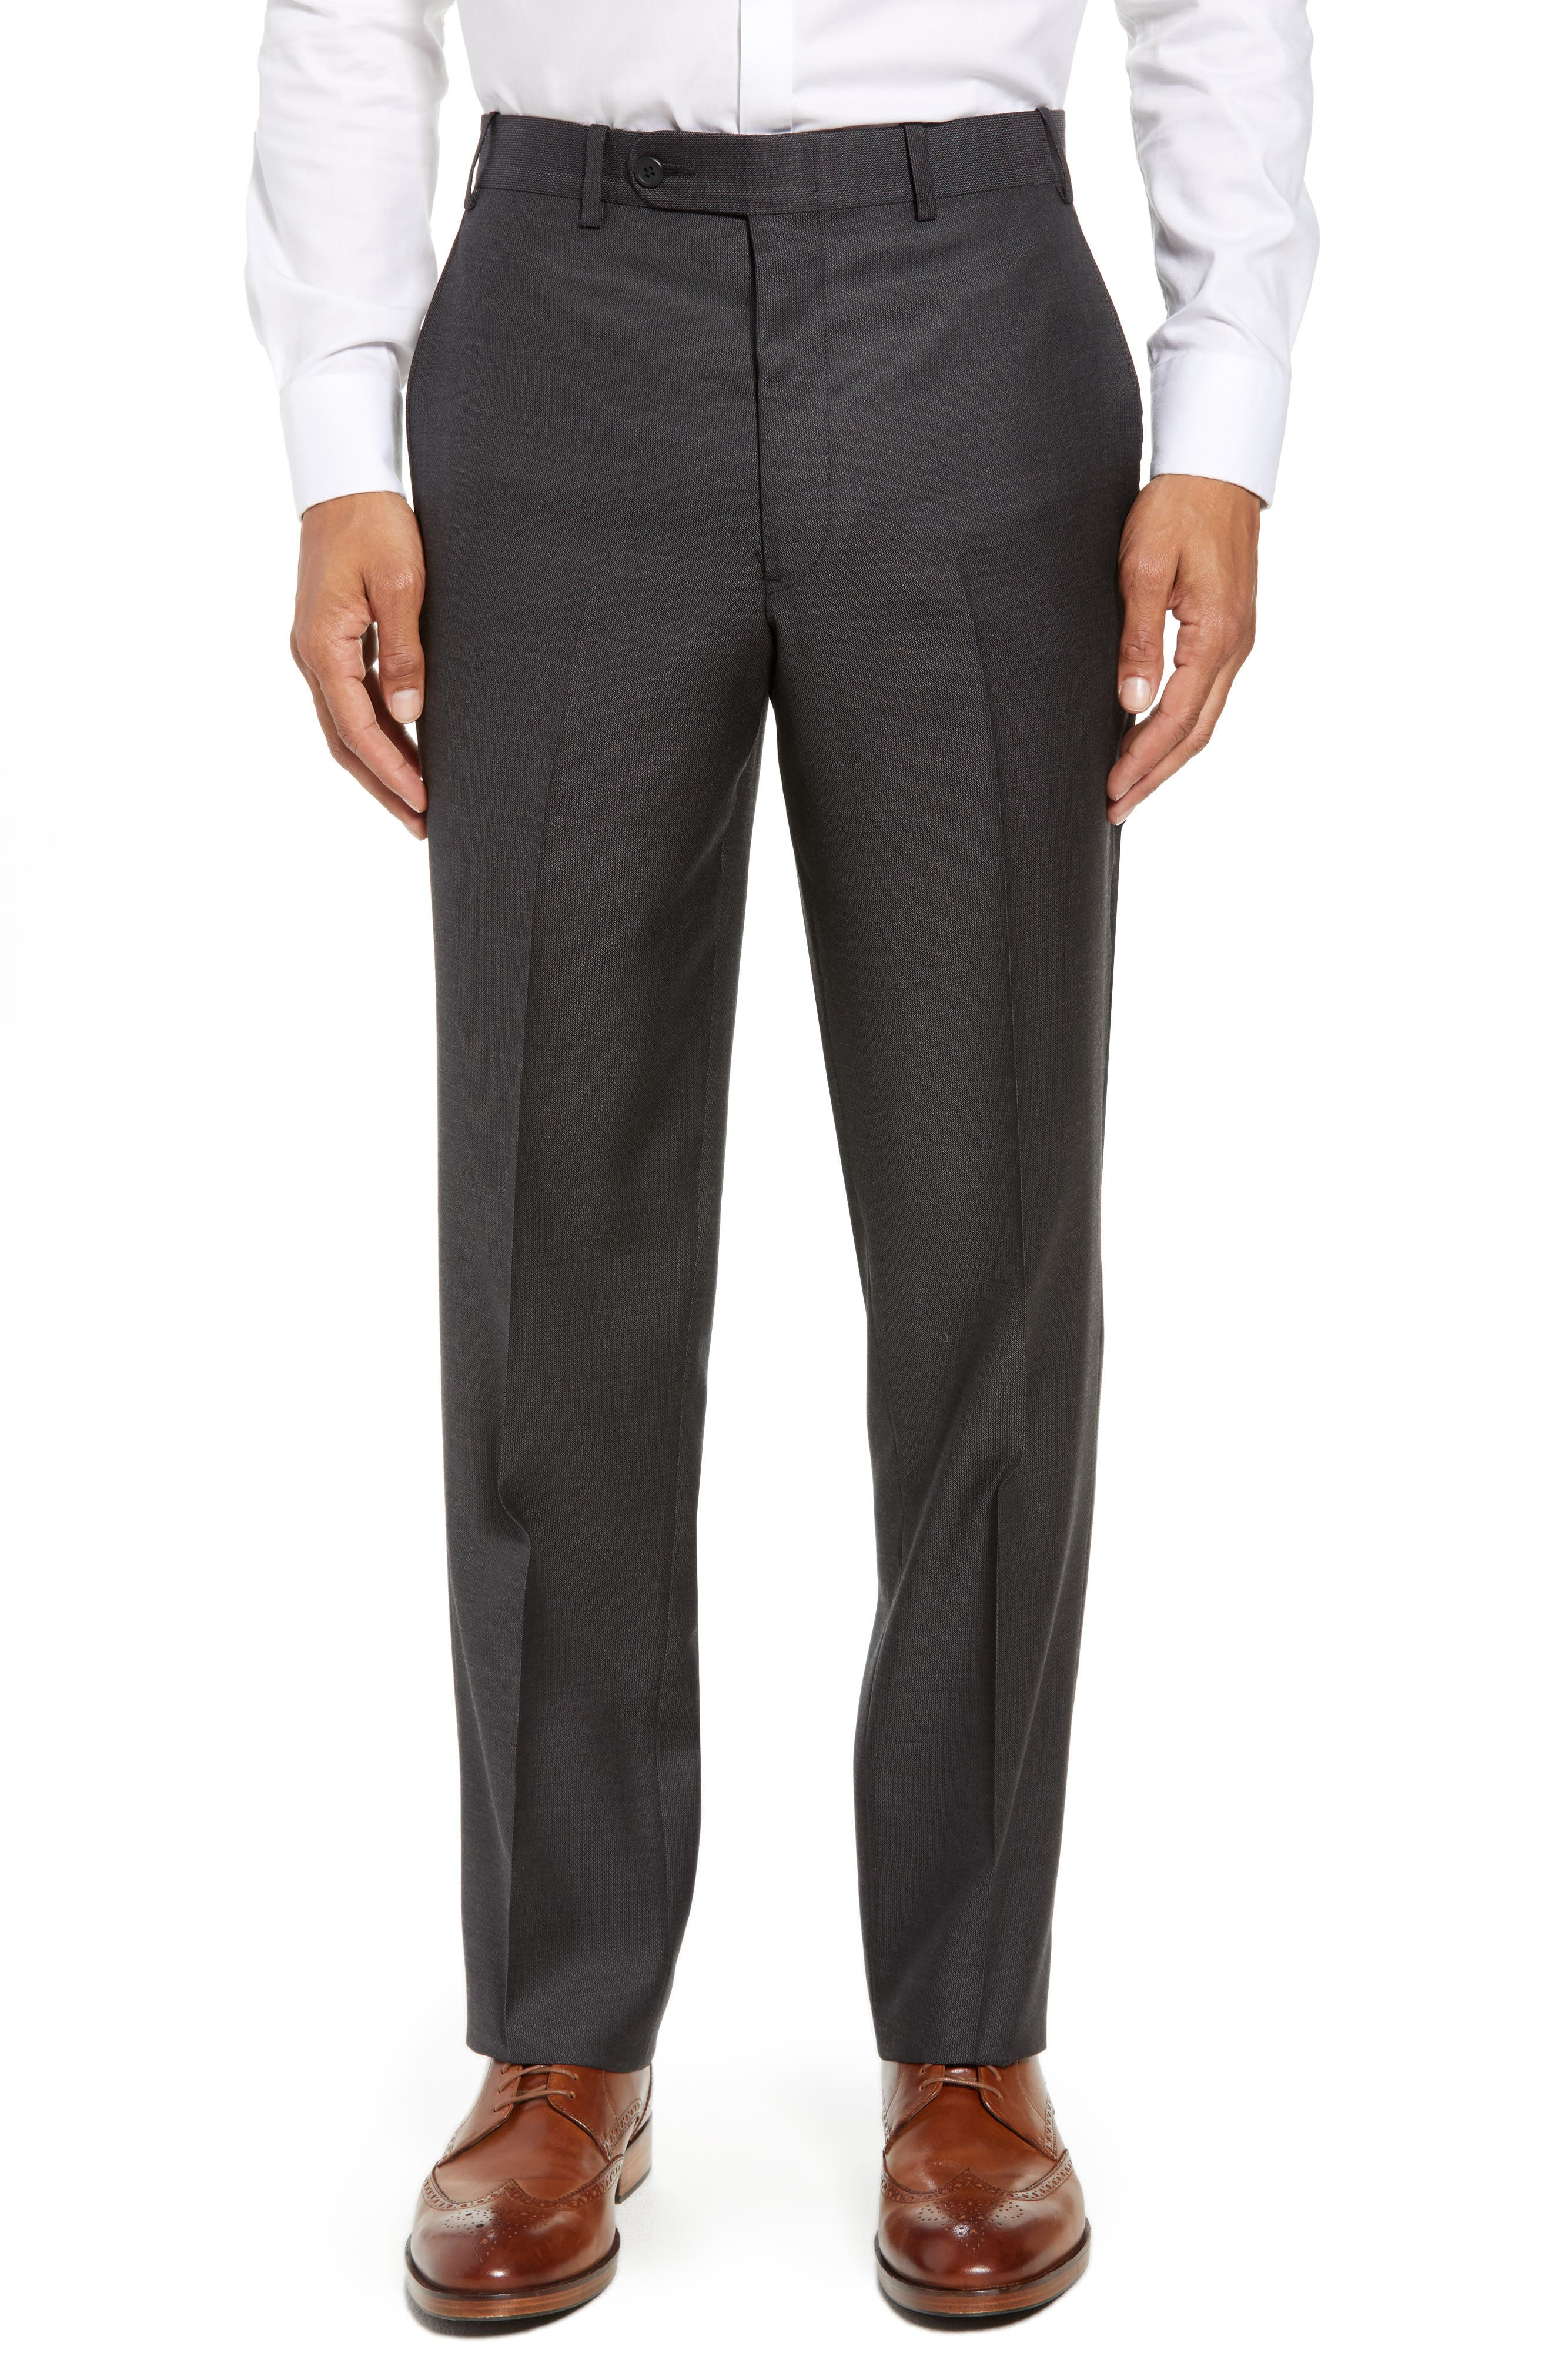 Torino Traditional Fit Flat Front Solid Wool Trousers,                             Main thumbnail 1, color,                             BLACK